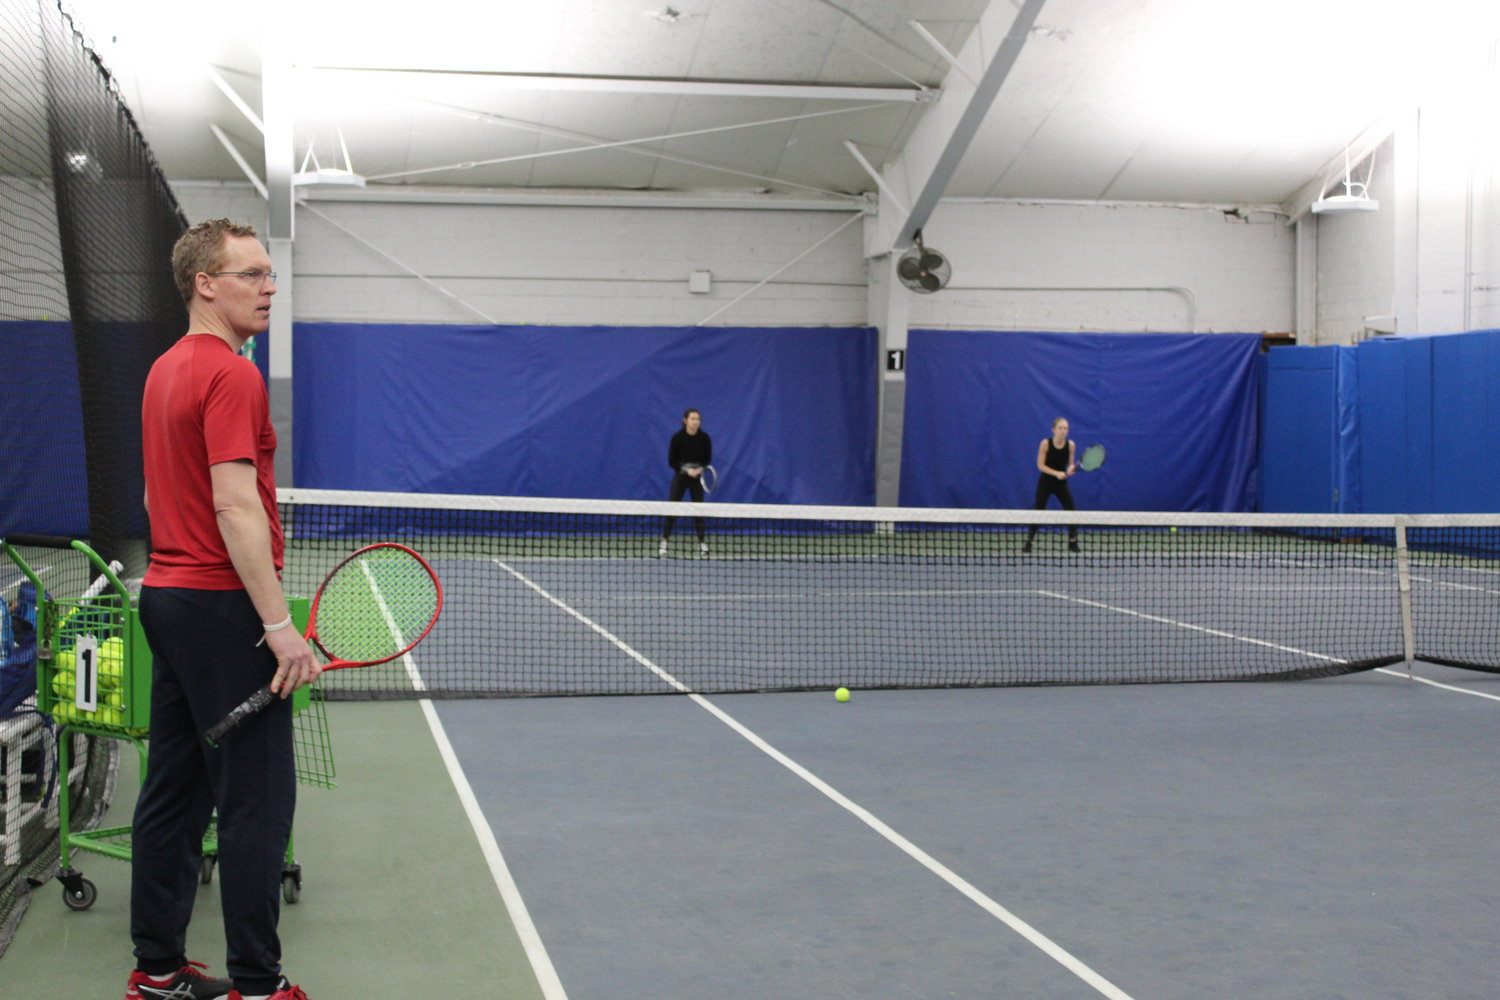 Instructors like Jason Strong can teach clients at Glen Head Racquet Club as they remain socially distant.